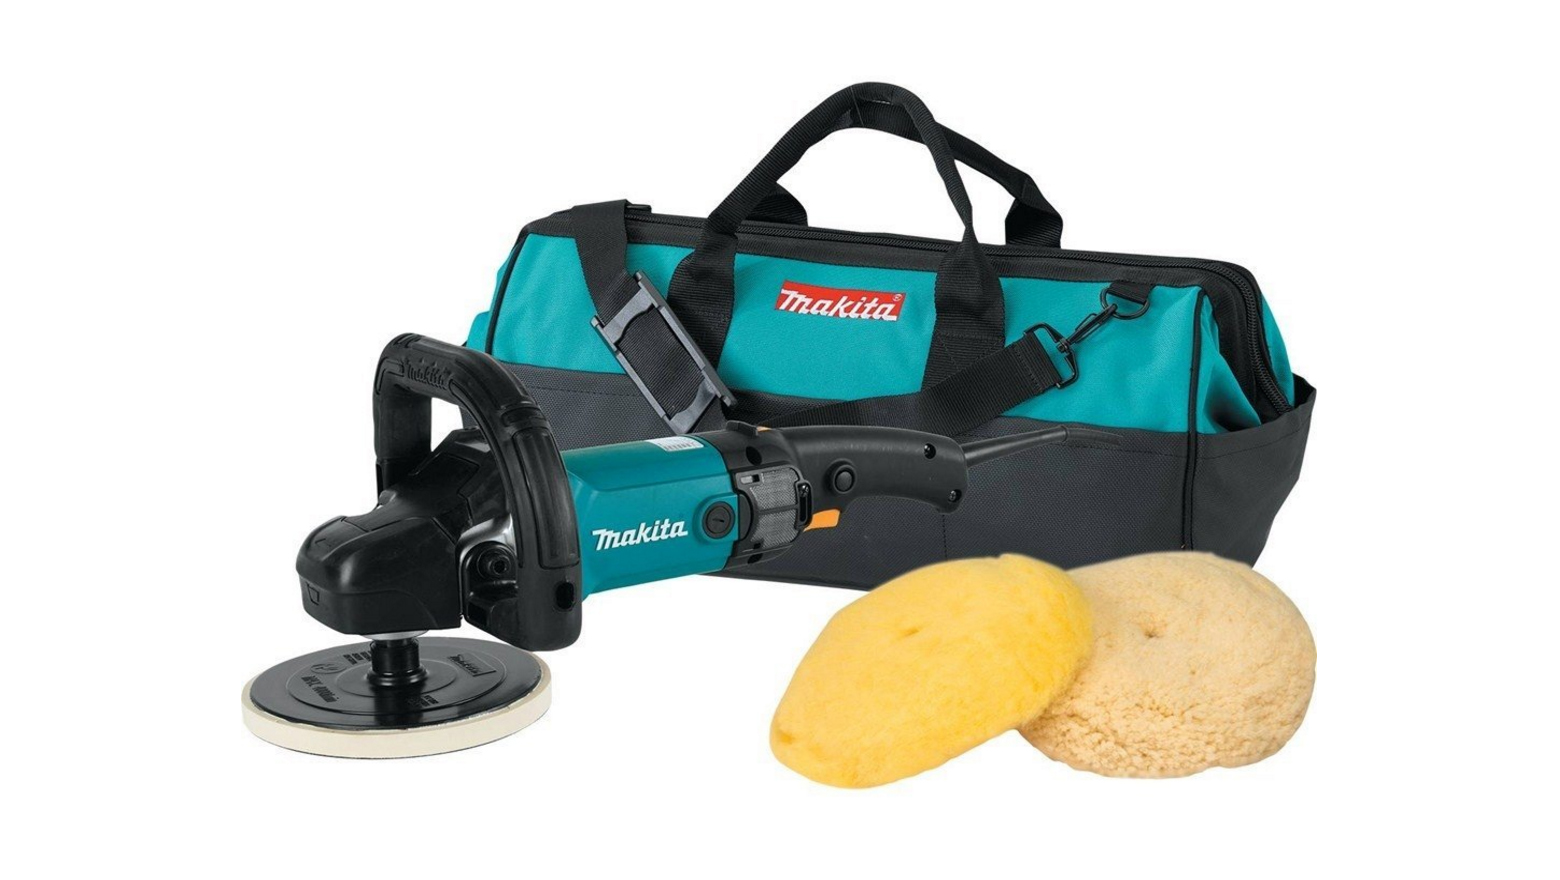 Amazon, cyber monday, cyber monday sales, cyber monday deals, tools, power tools, hand tools, woodworking tools, sanders, detail sander, makita